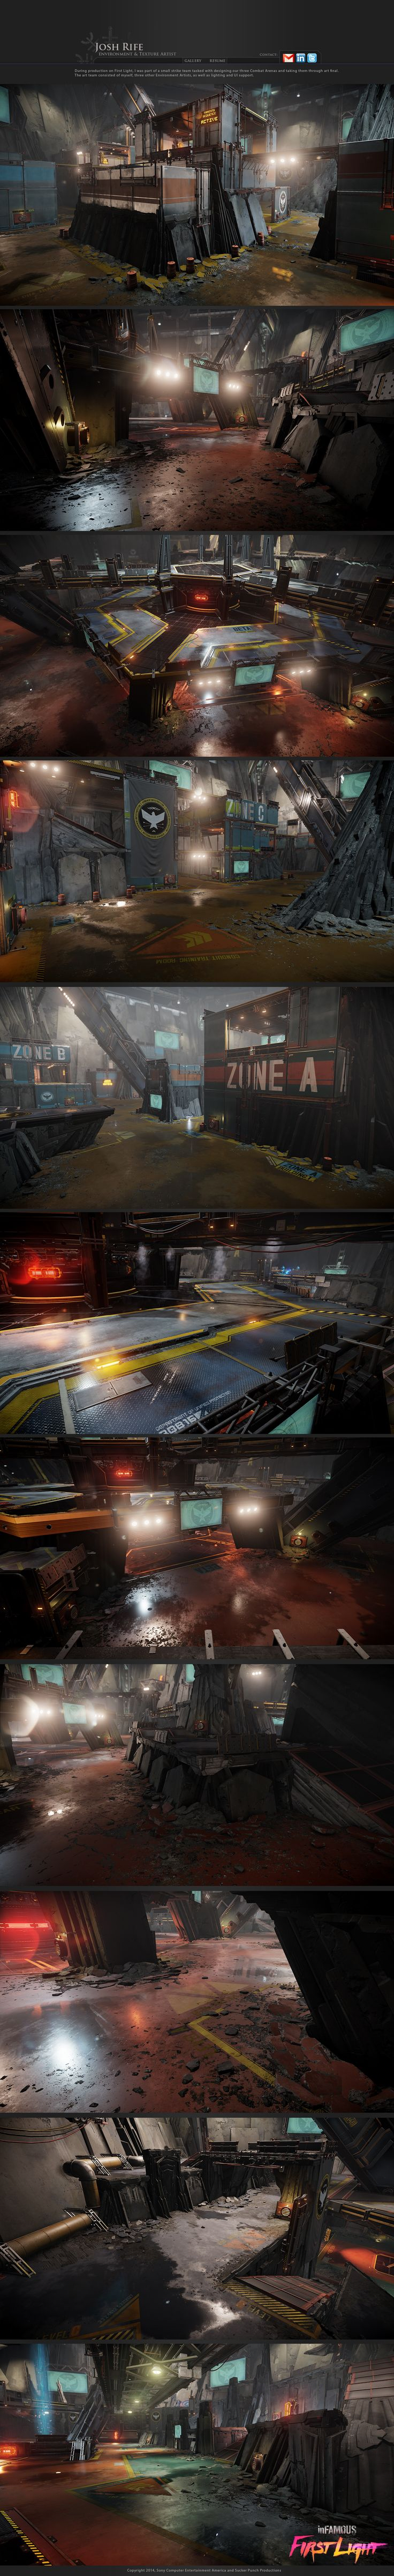 inFAMOUS: First Light art dump - Polycount Forum